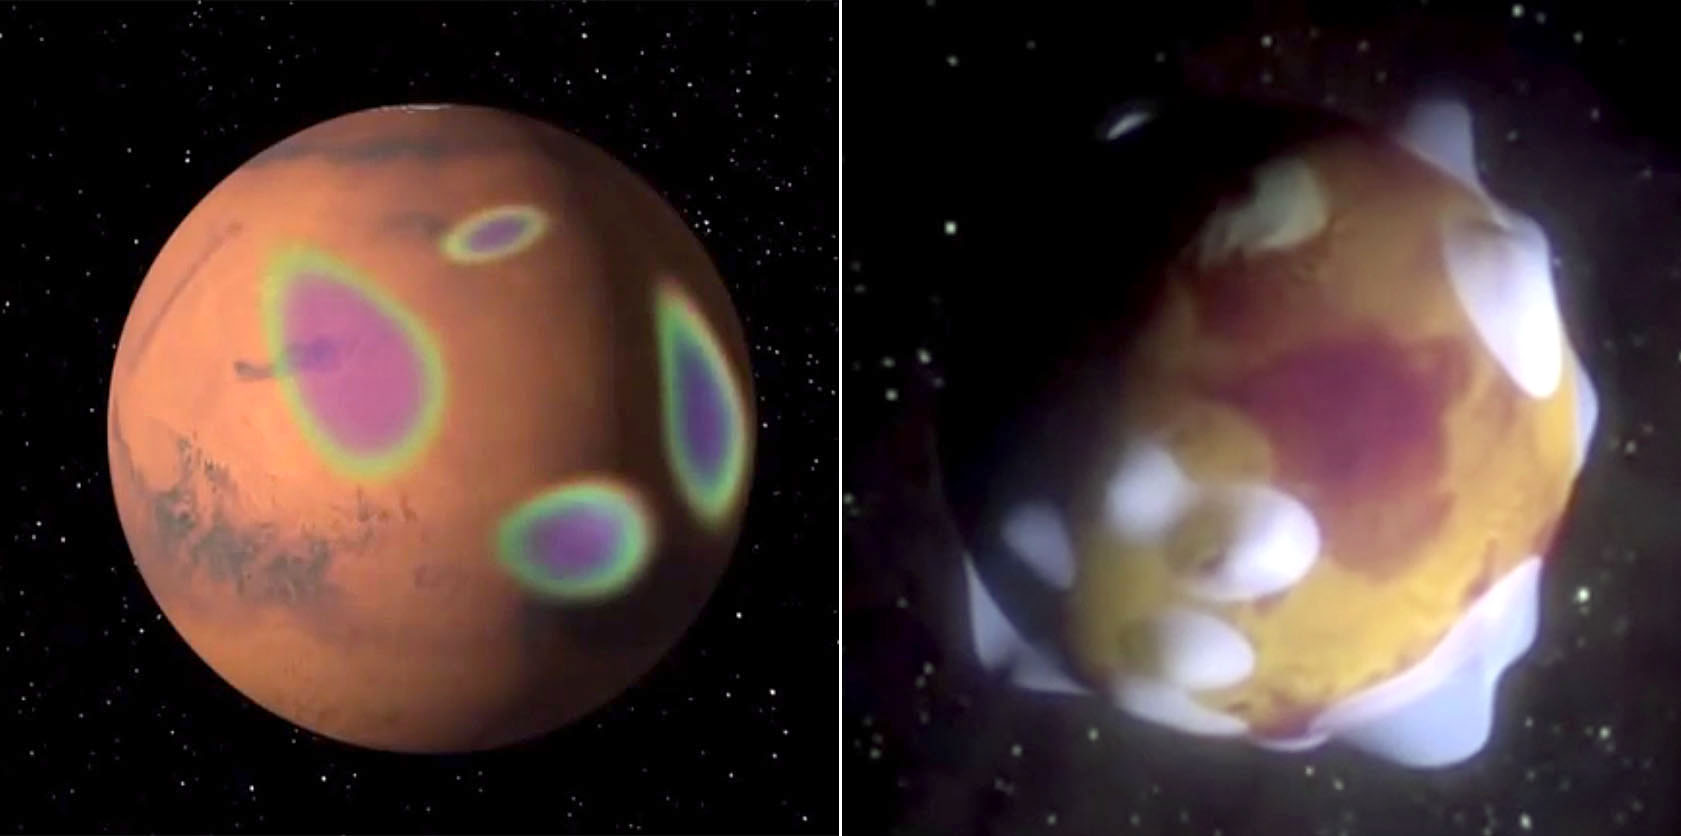 Mars has magnetized rocks in its crust that create localized, patchy magnetic fields (left). In the illustration at right, we see how those fields extend into space above the rocks. At their tops, auroras can form. - Image Credit: NASA